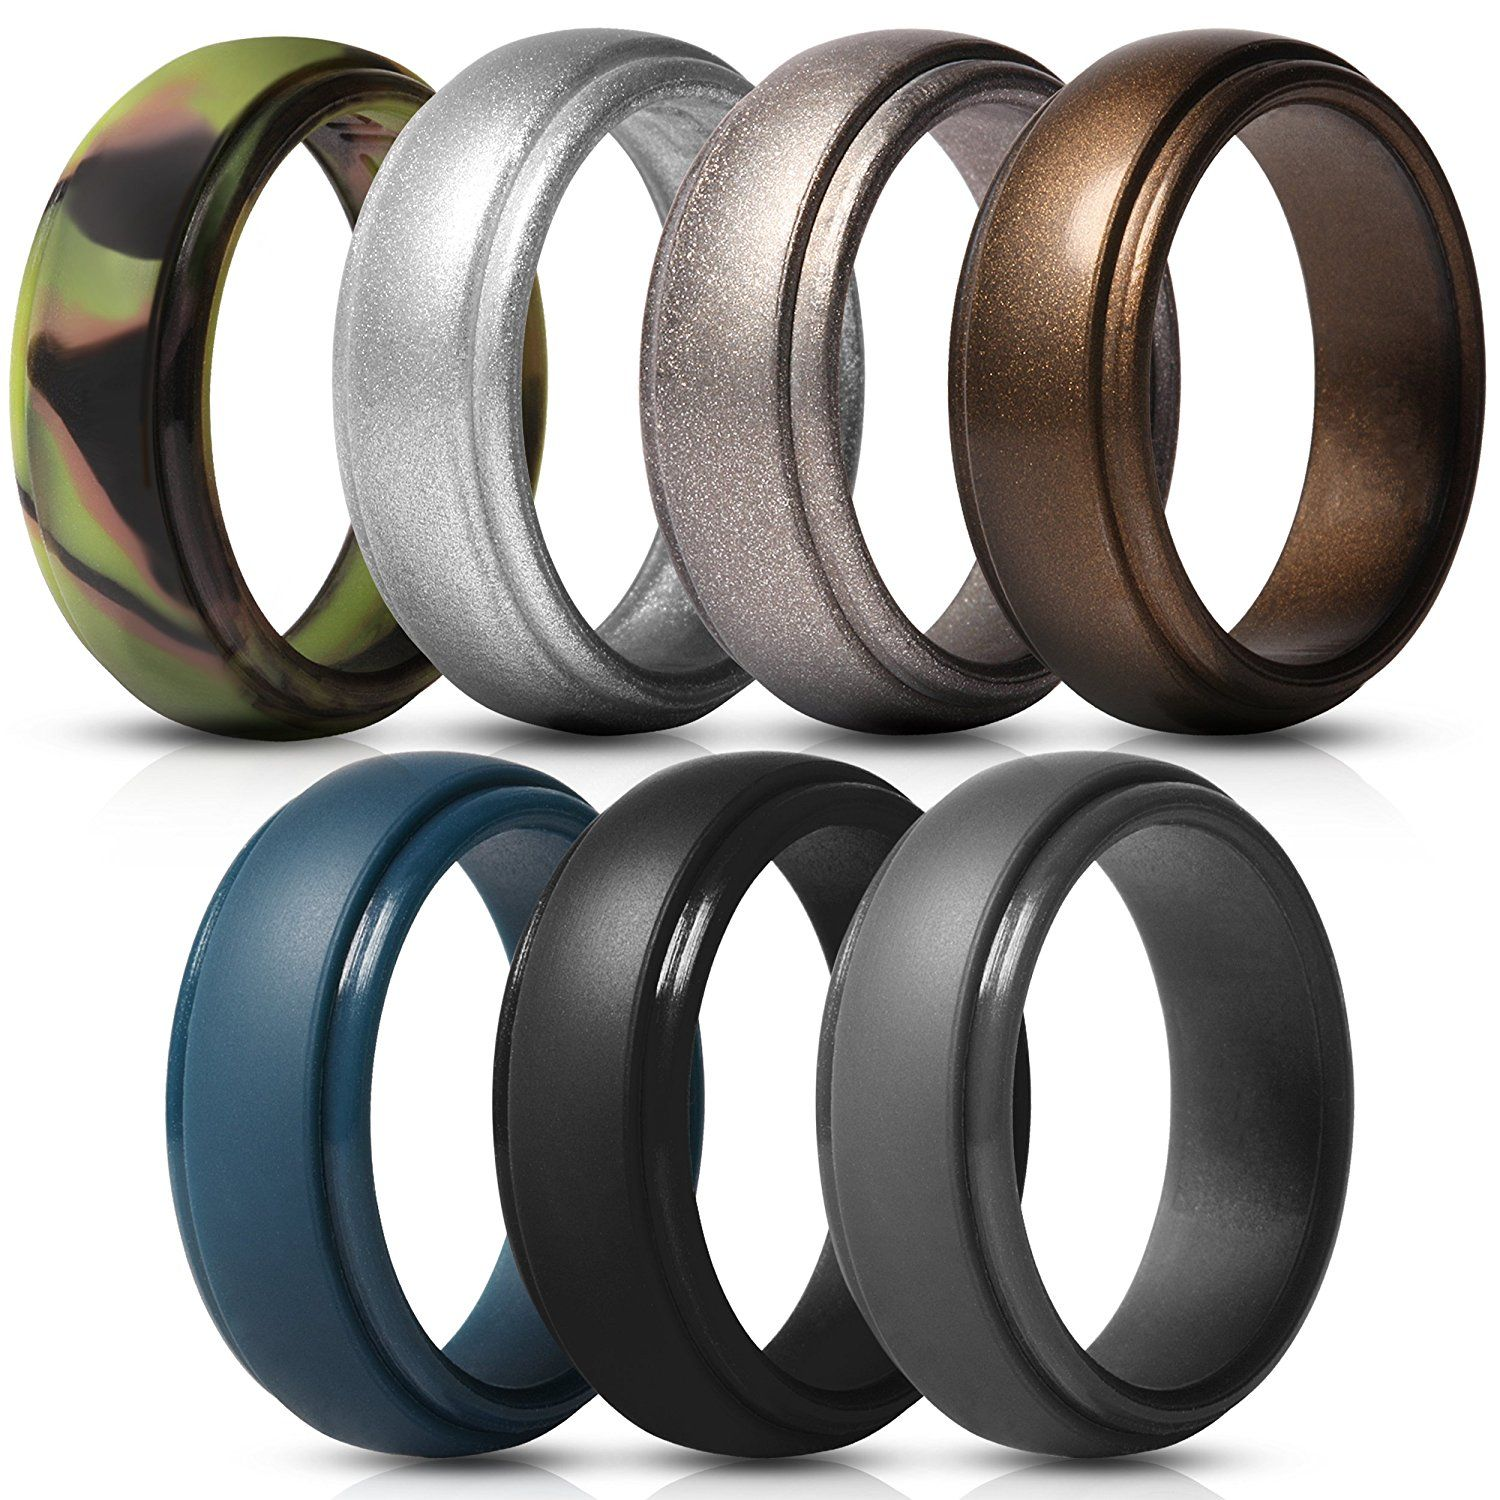 Saco Band Silicone Rings for Men 7 Pack